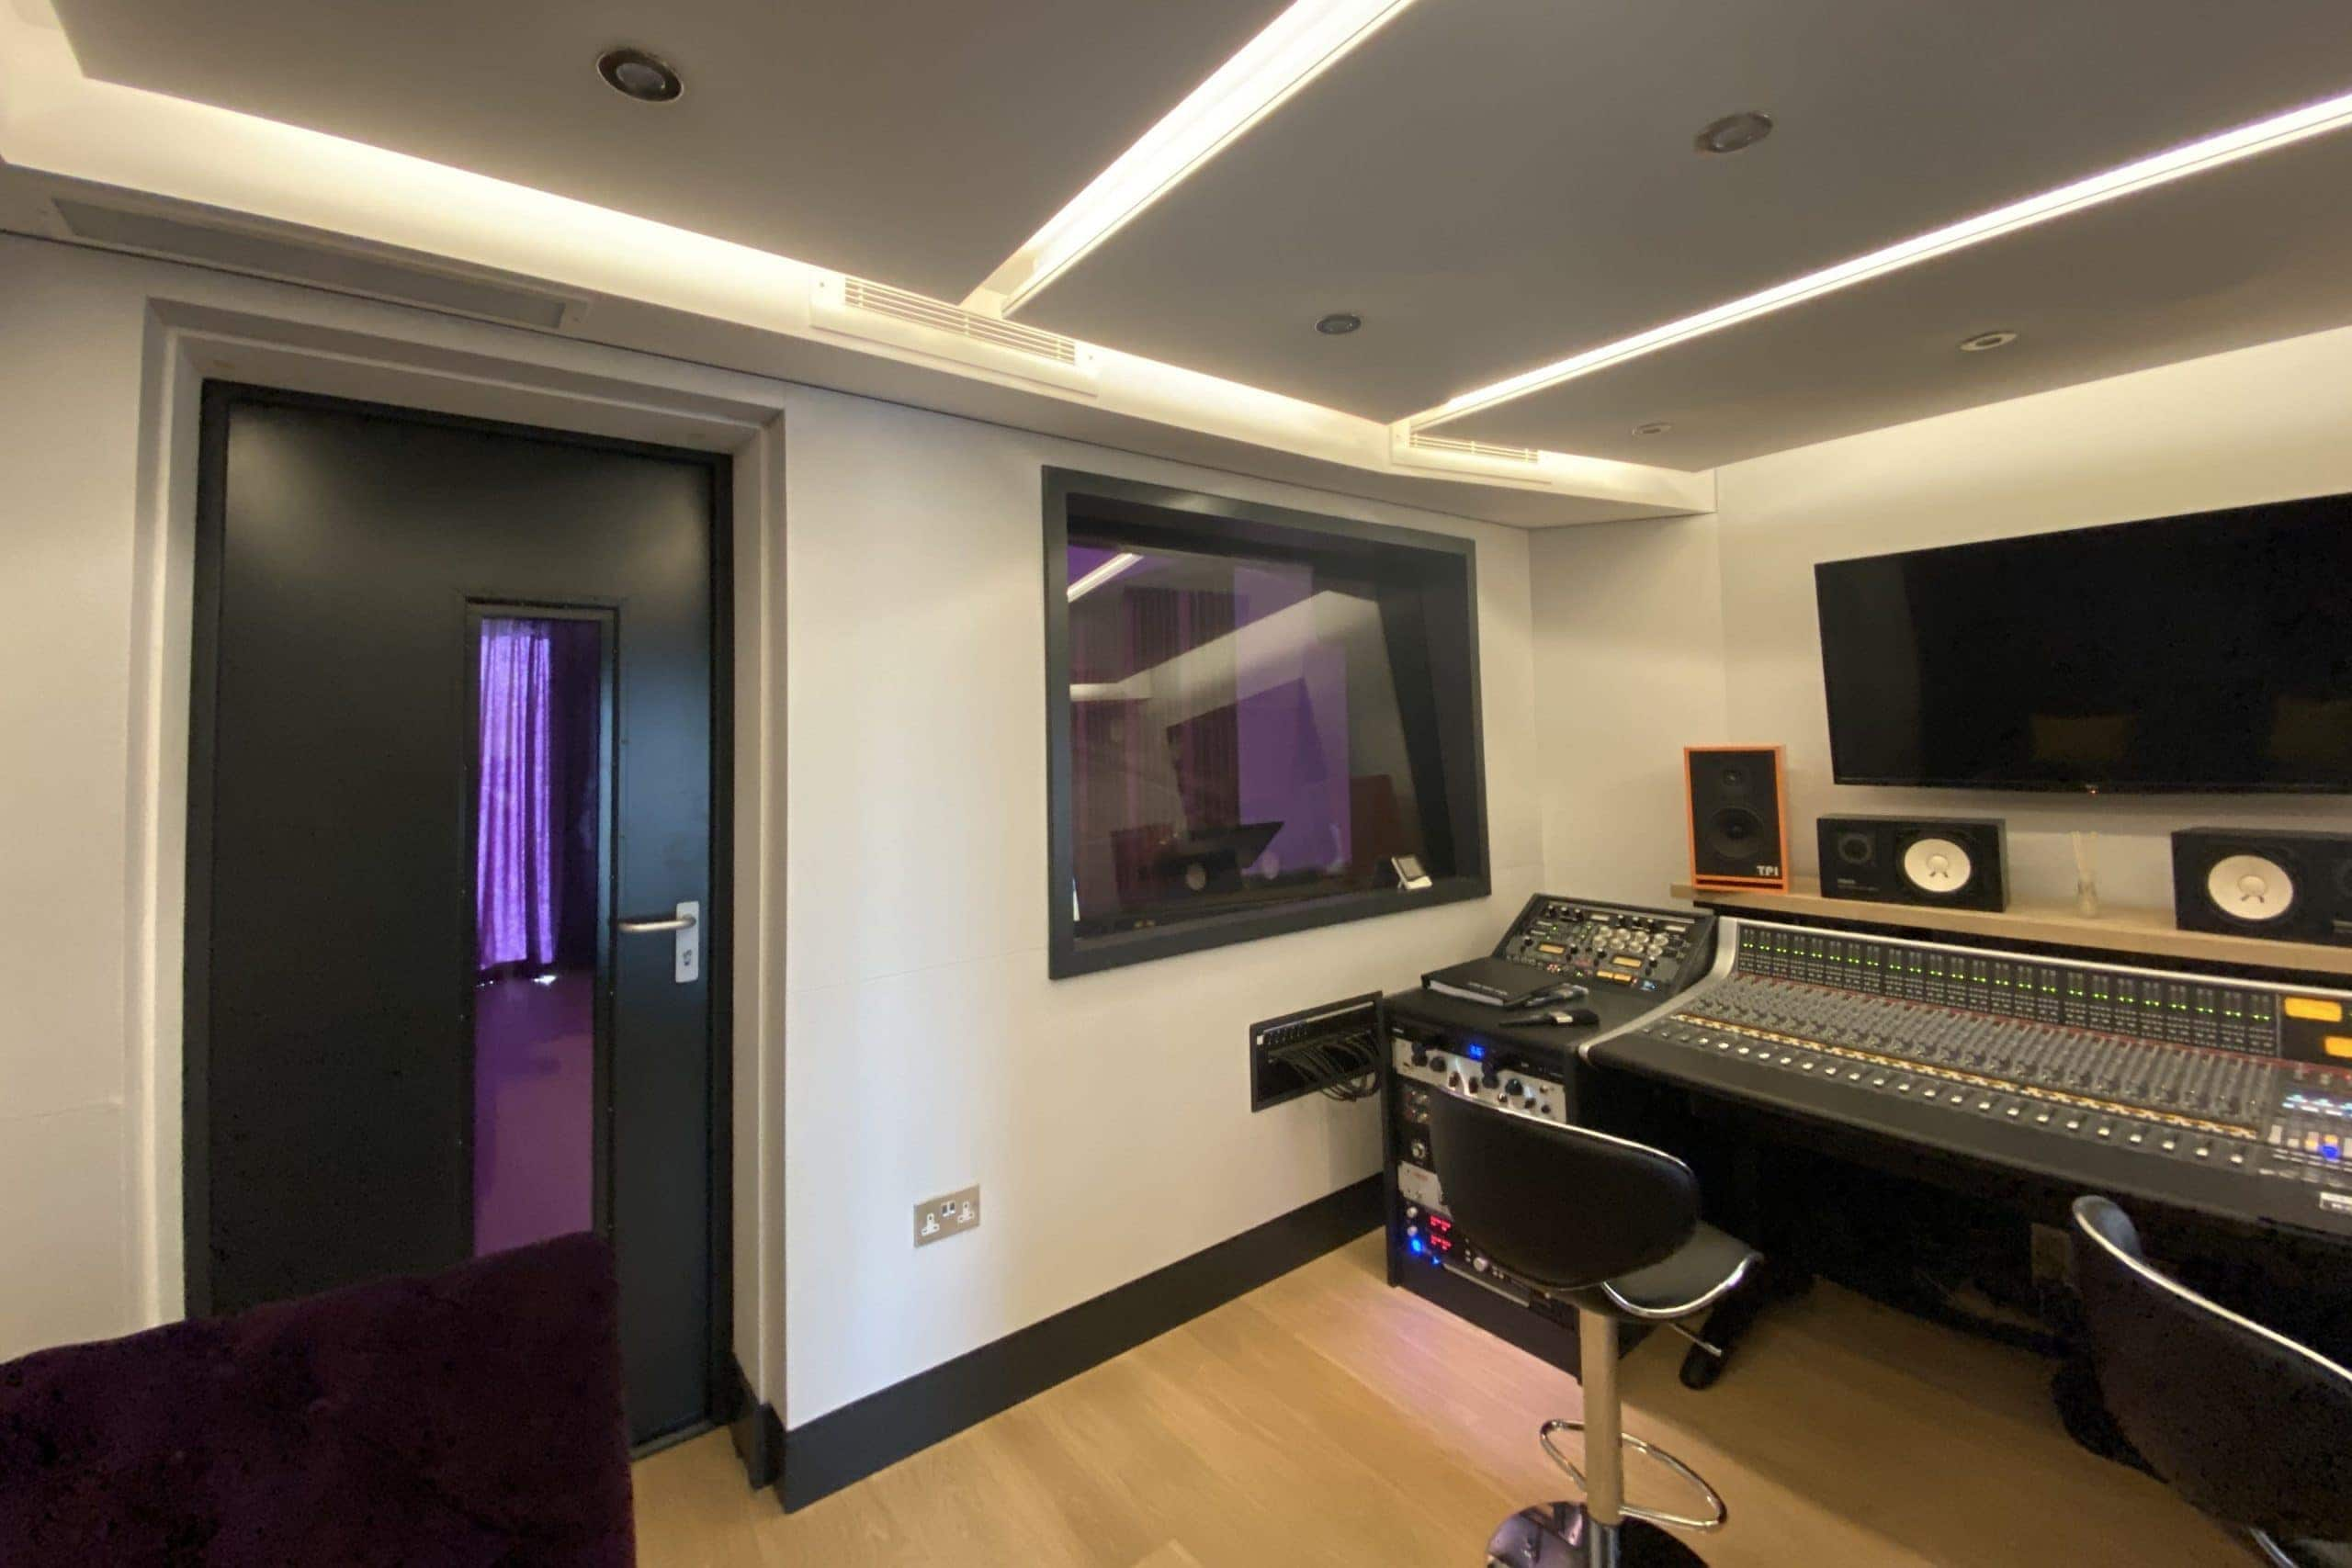 View of multiple white vents of ducted air conditioning system in Arden barn conversion in Lingfield in a music studio over control desk fitted by SubCoolFM